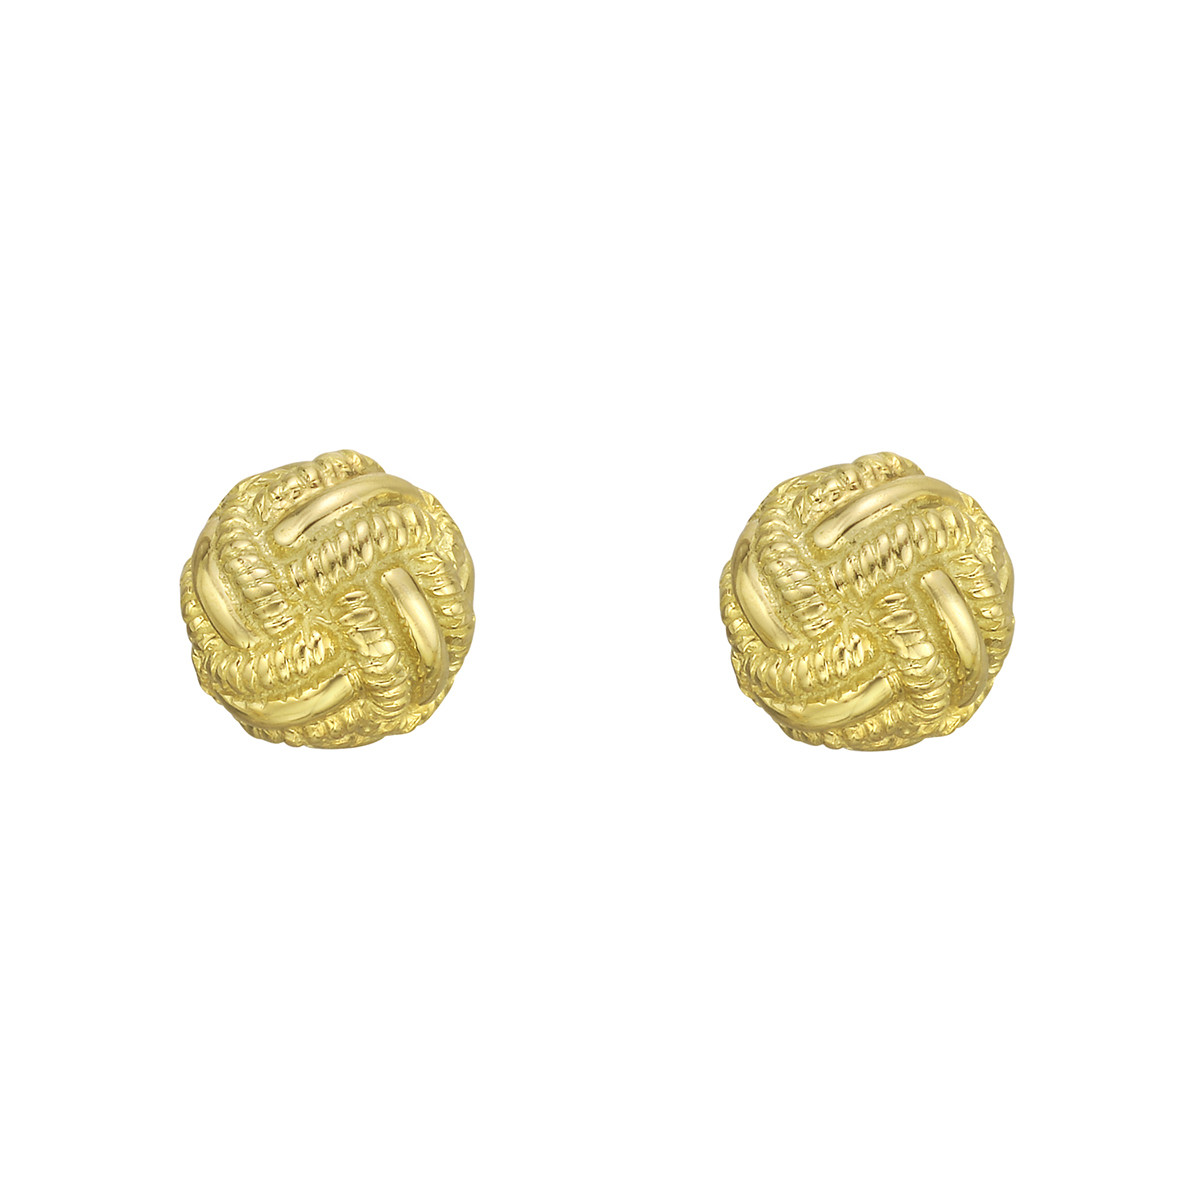 Schlumberger 18k Yellow Gold Rope Knot Stud Earrings